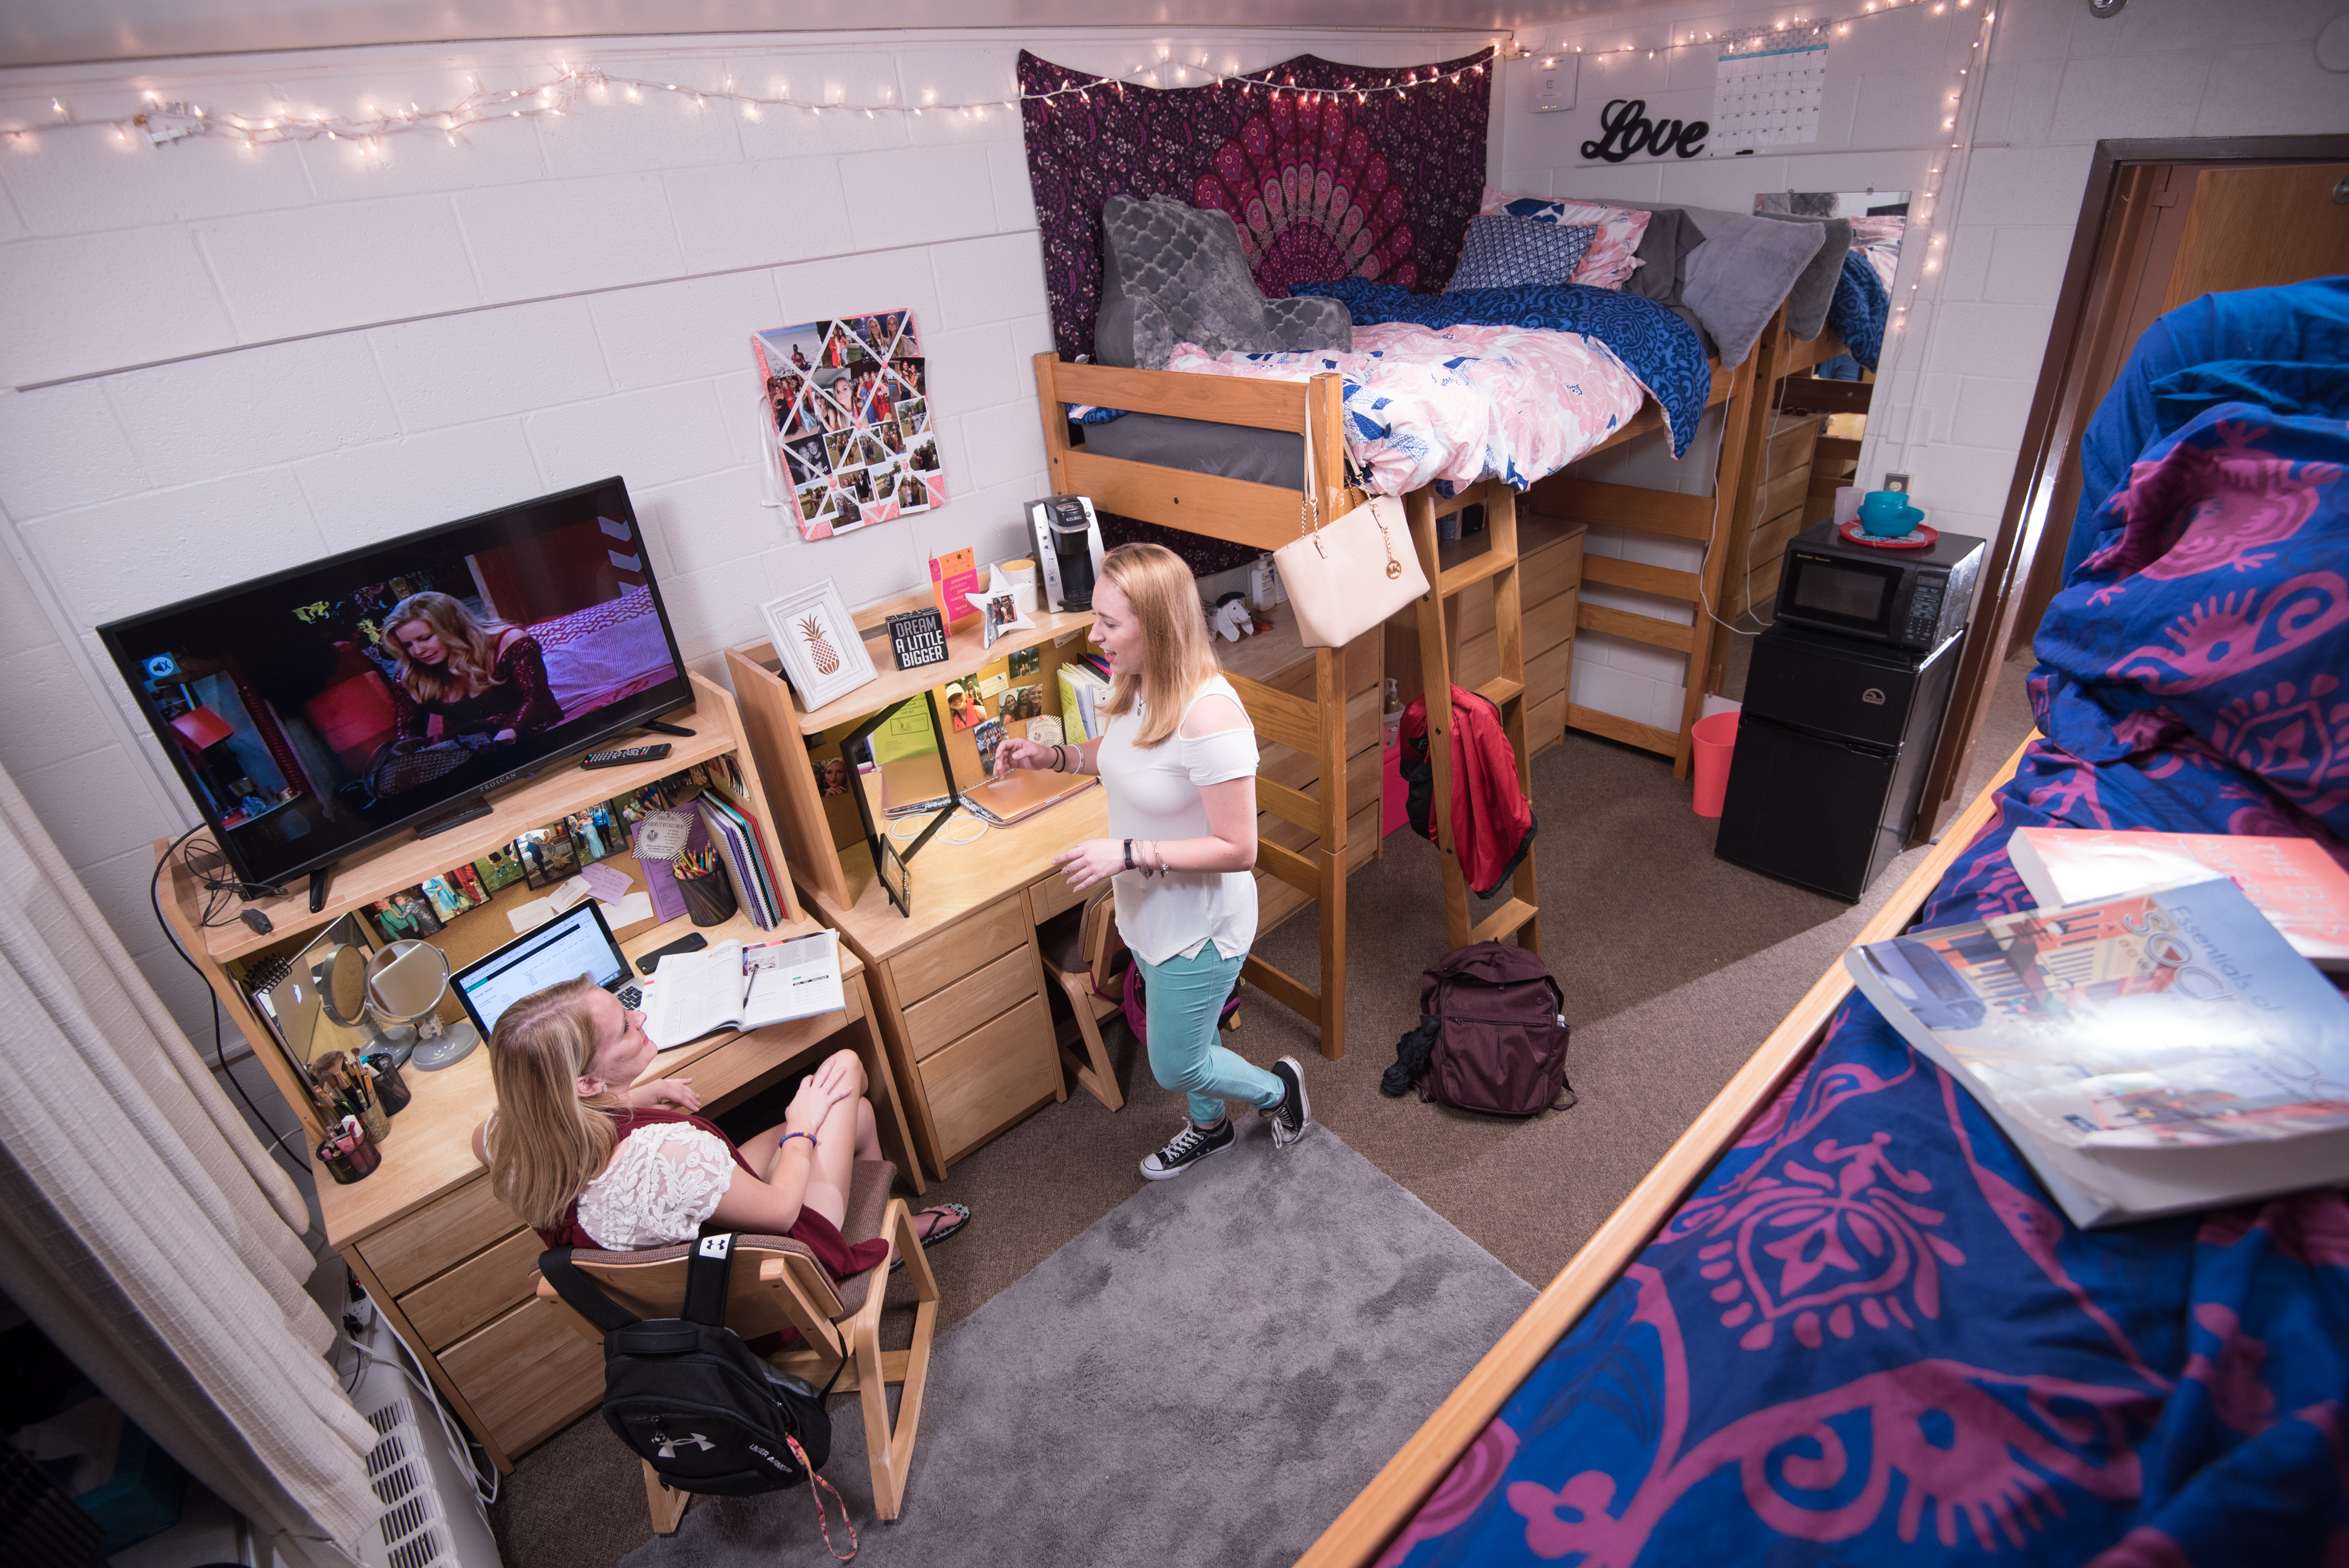 Students gathering in a residence hall room